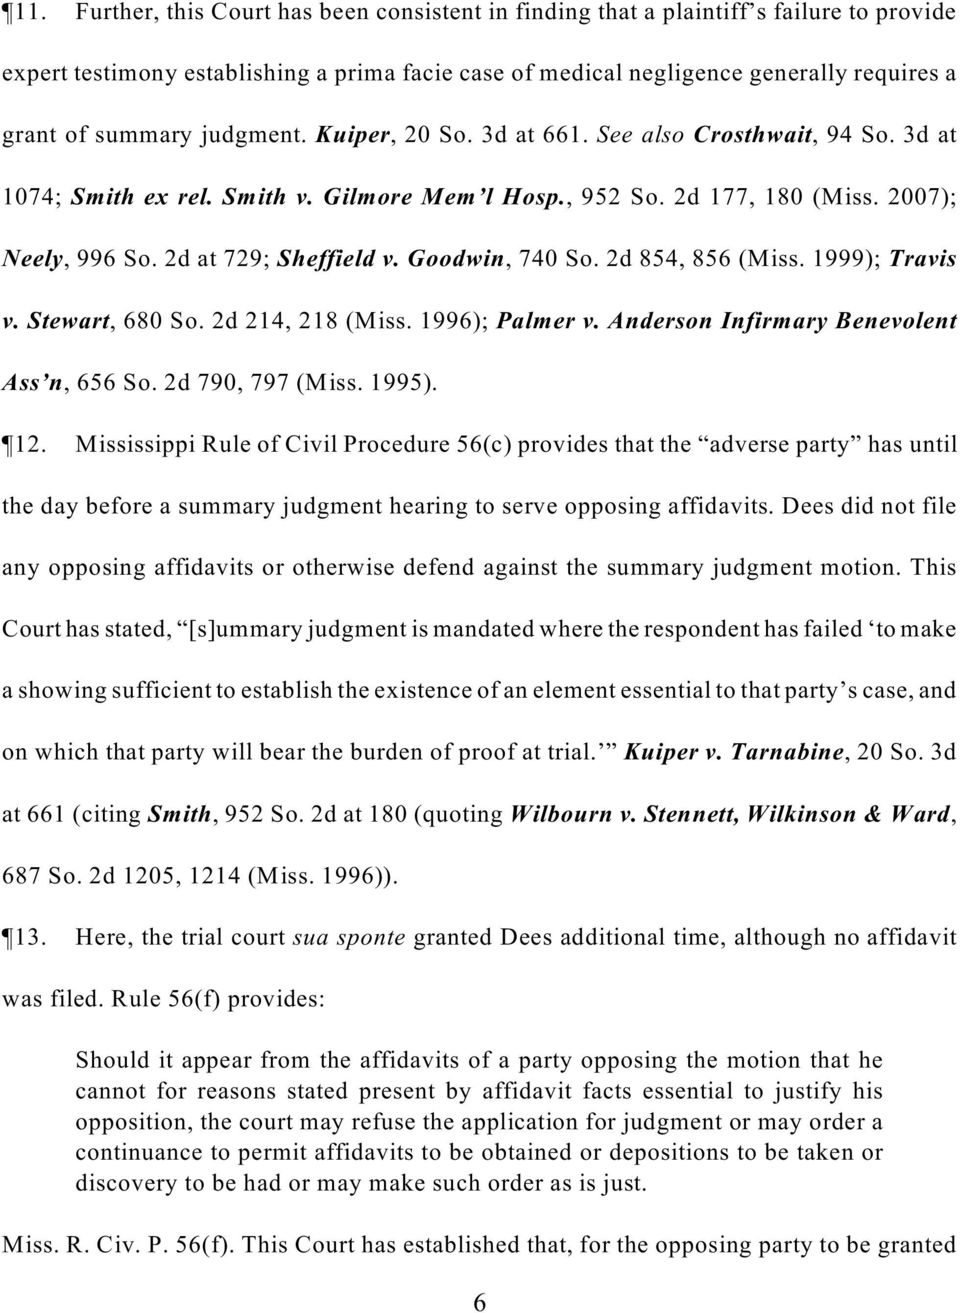 Mississippi Rules Of Civil Procedure >> In The Supreme Court Of Mississippi No Ia Sct Pdf